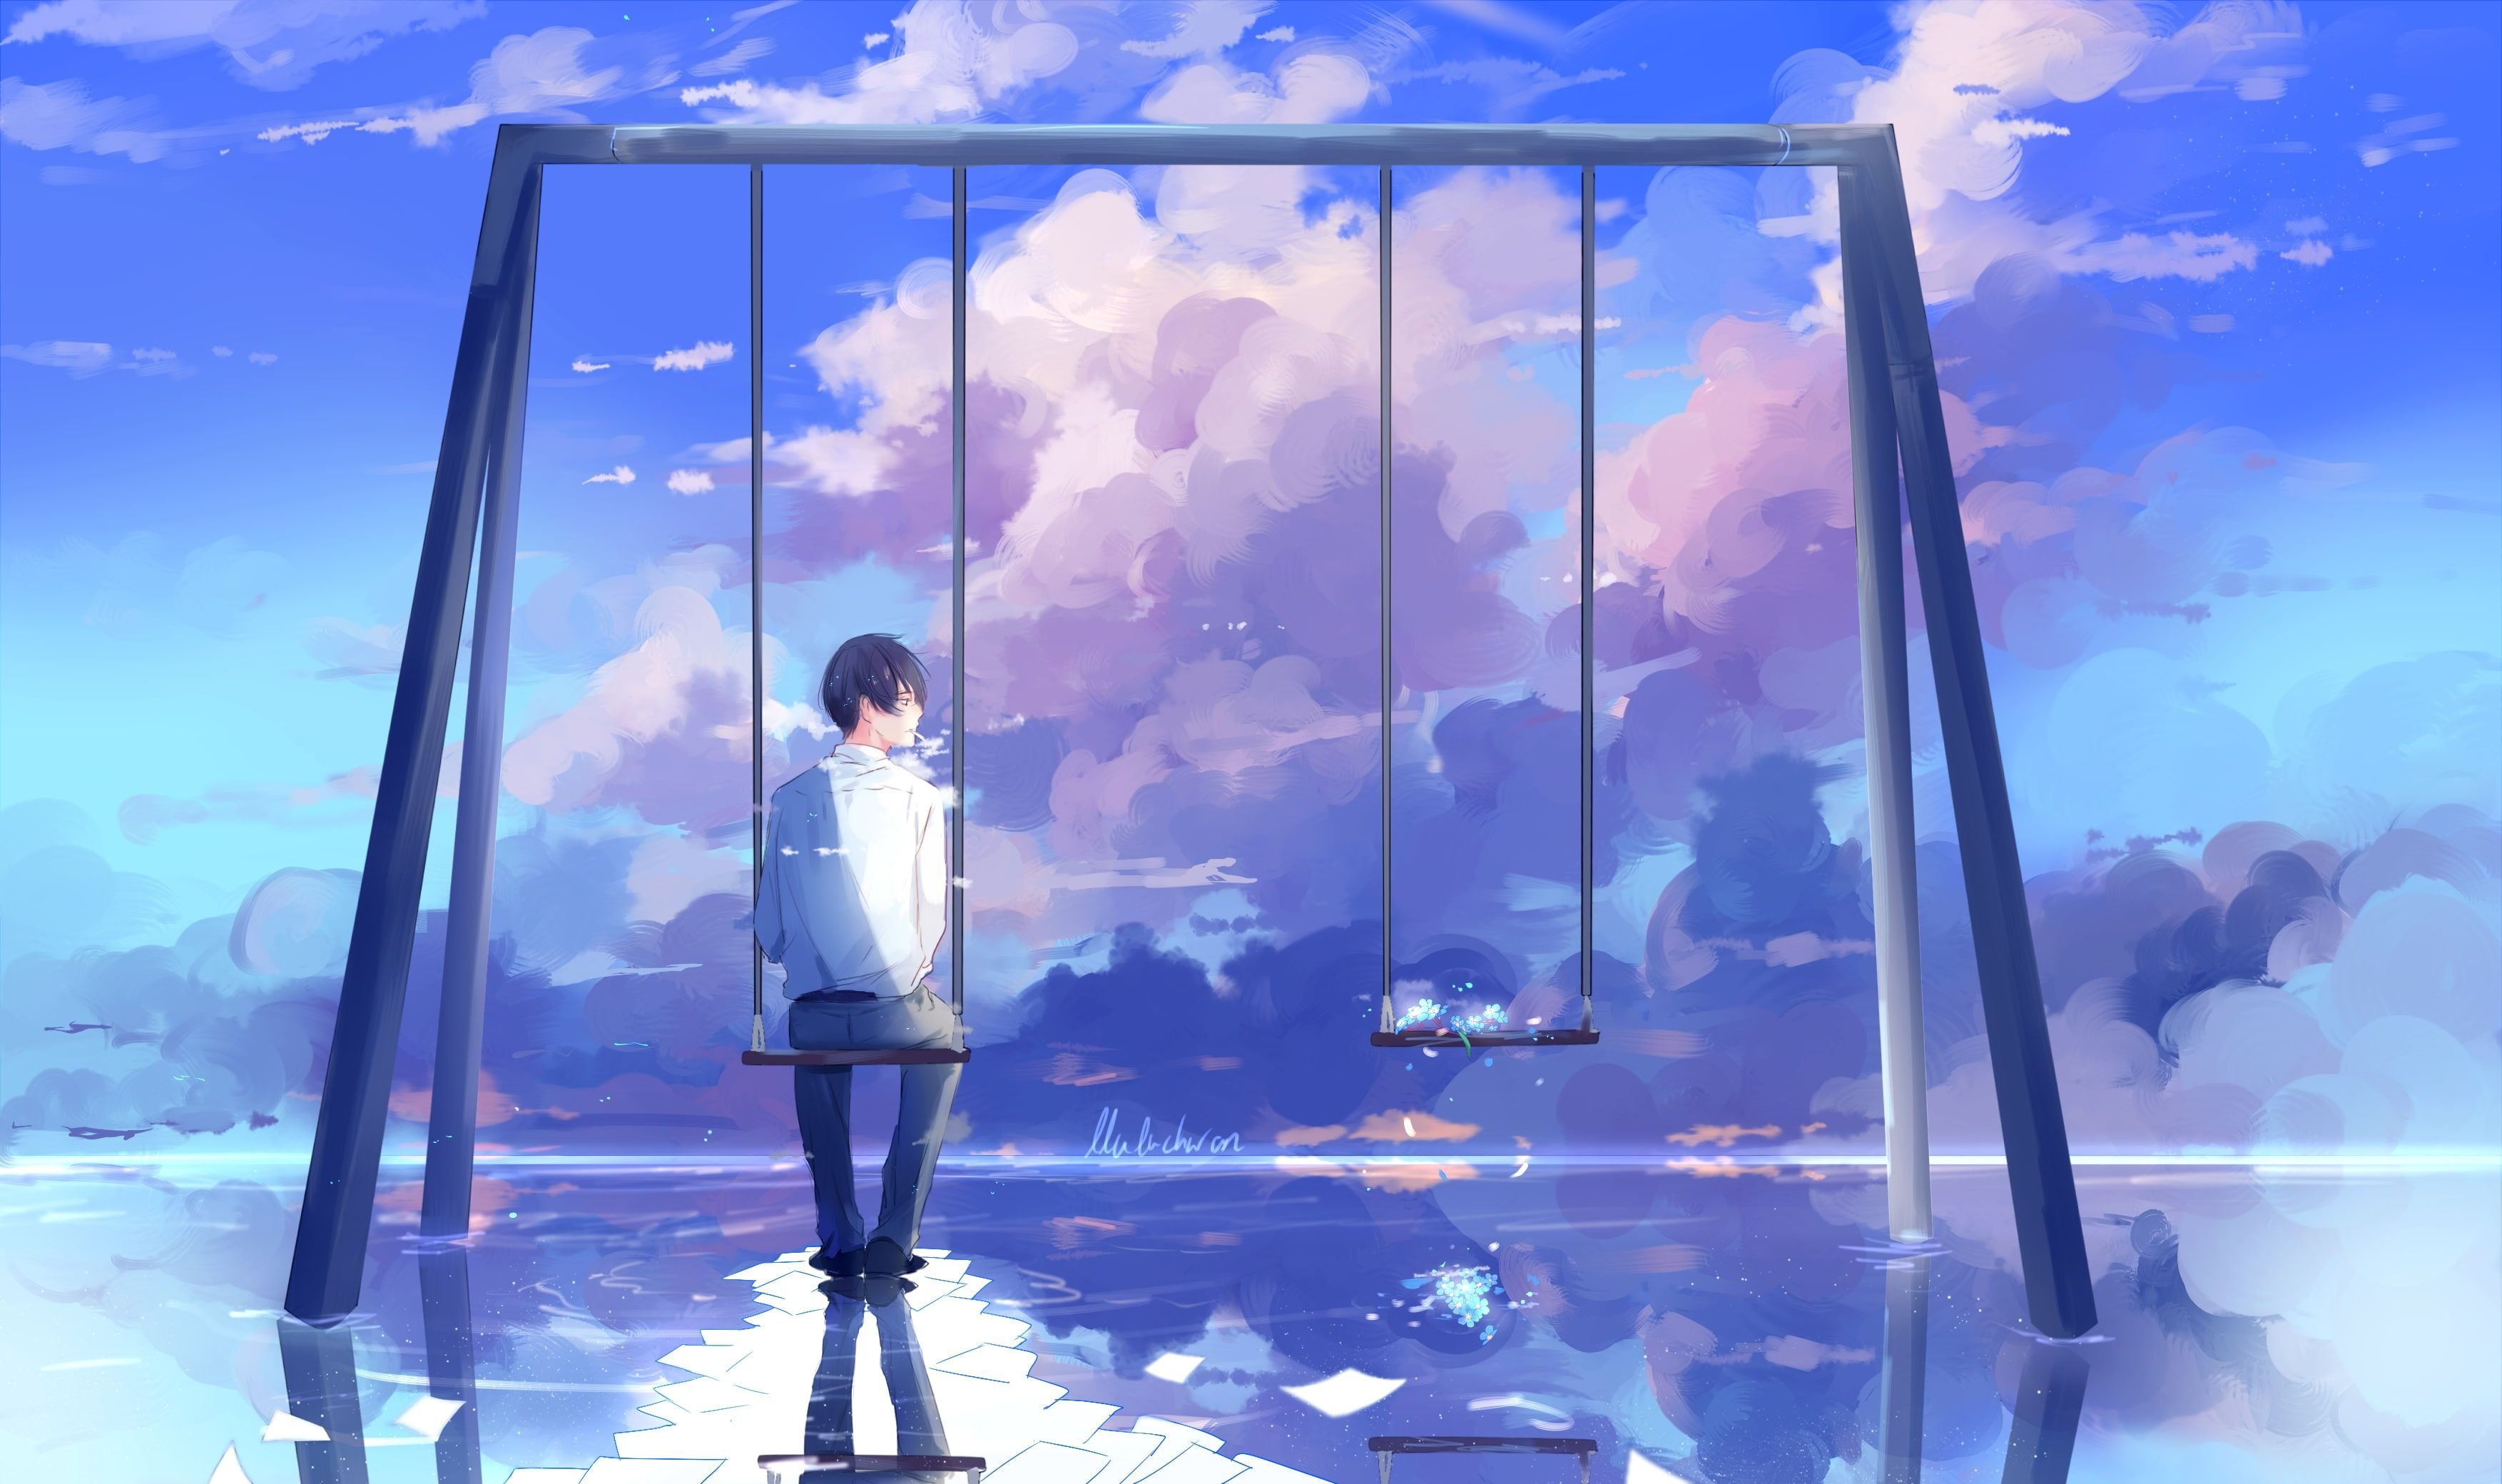 Anime Boy Scenic Swing Clouds Back View Reflection Anime 2k